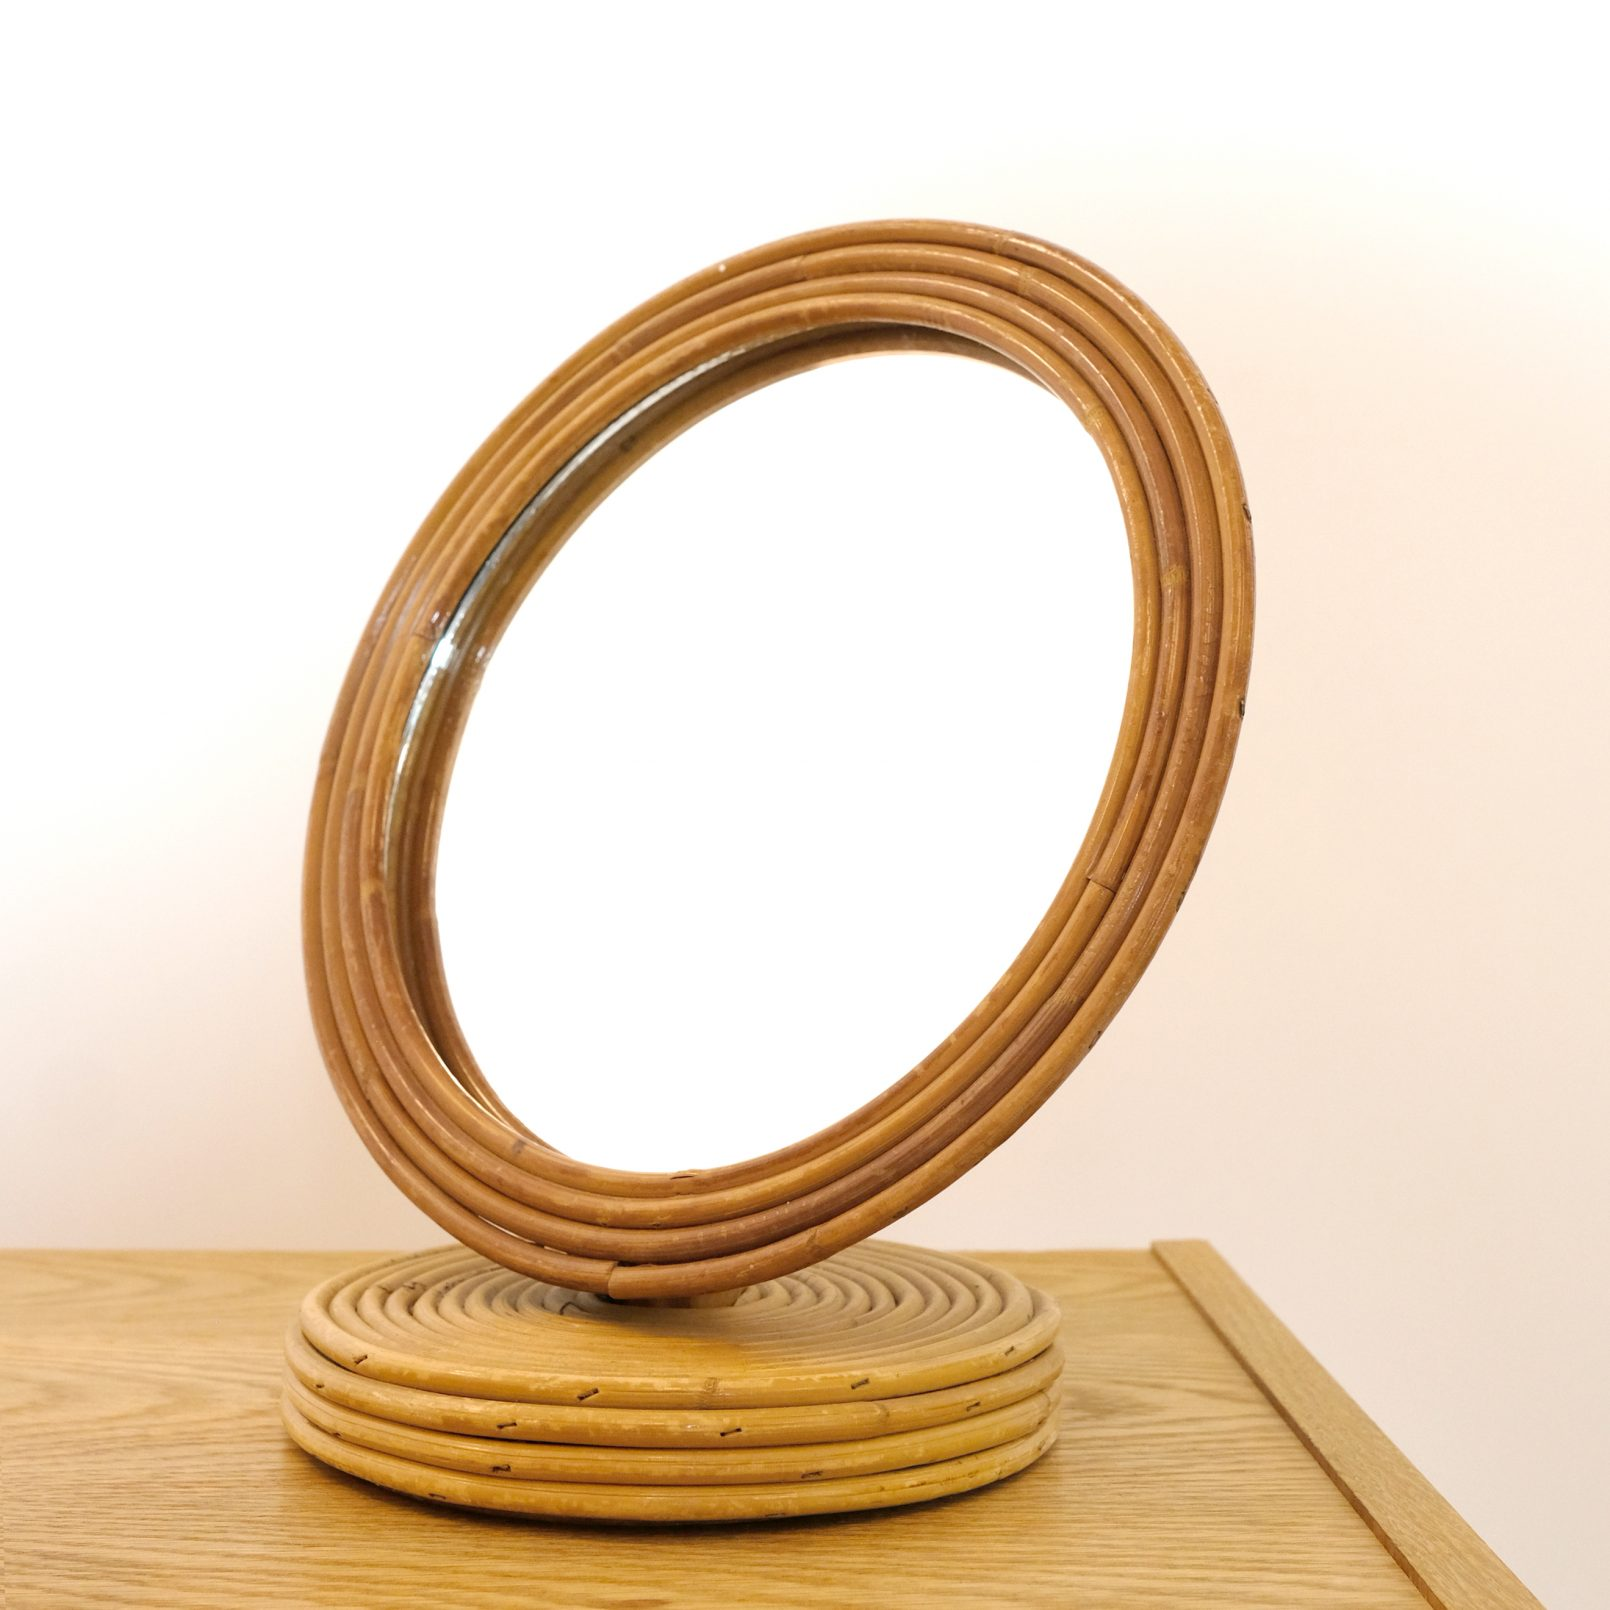 French rattan table mirror from the fifties.